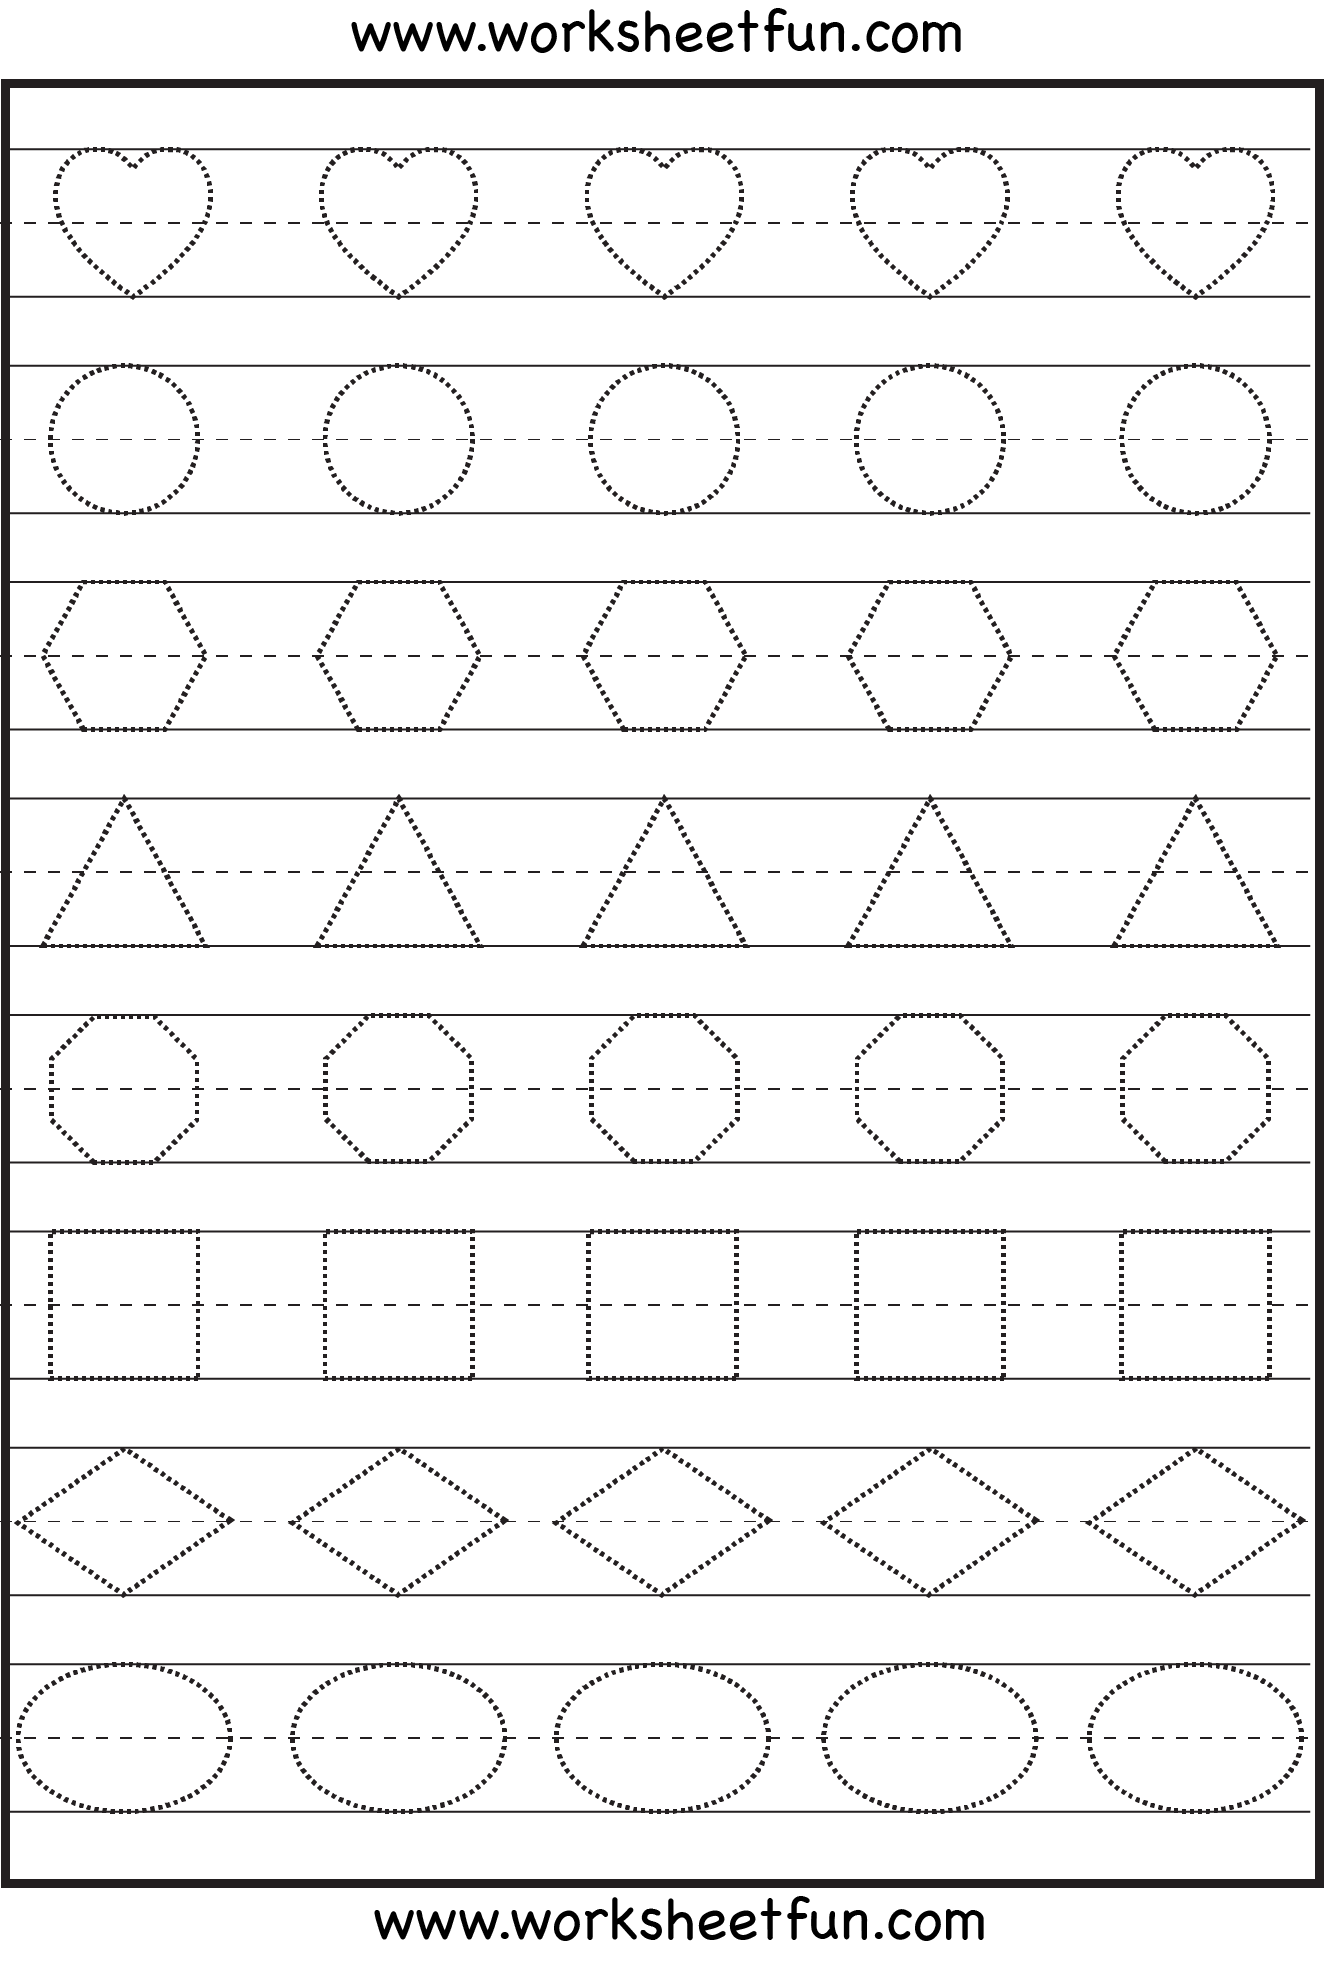 Worksheets Free Printables Worksheets 17 best images about school on pinterest alphabet worksheets printable letters and letter b